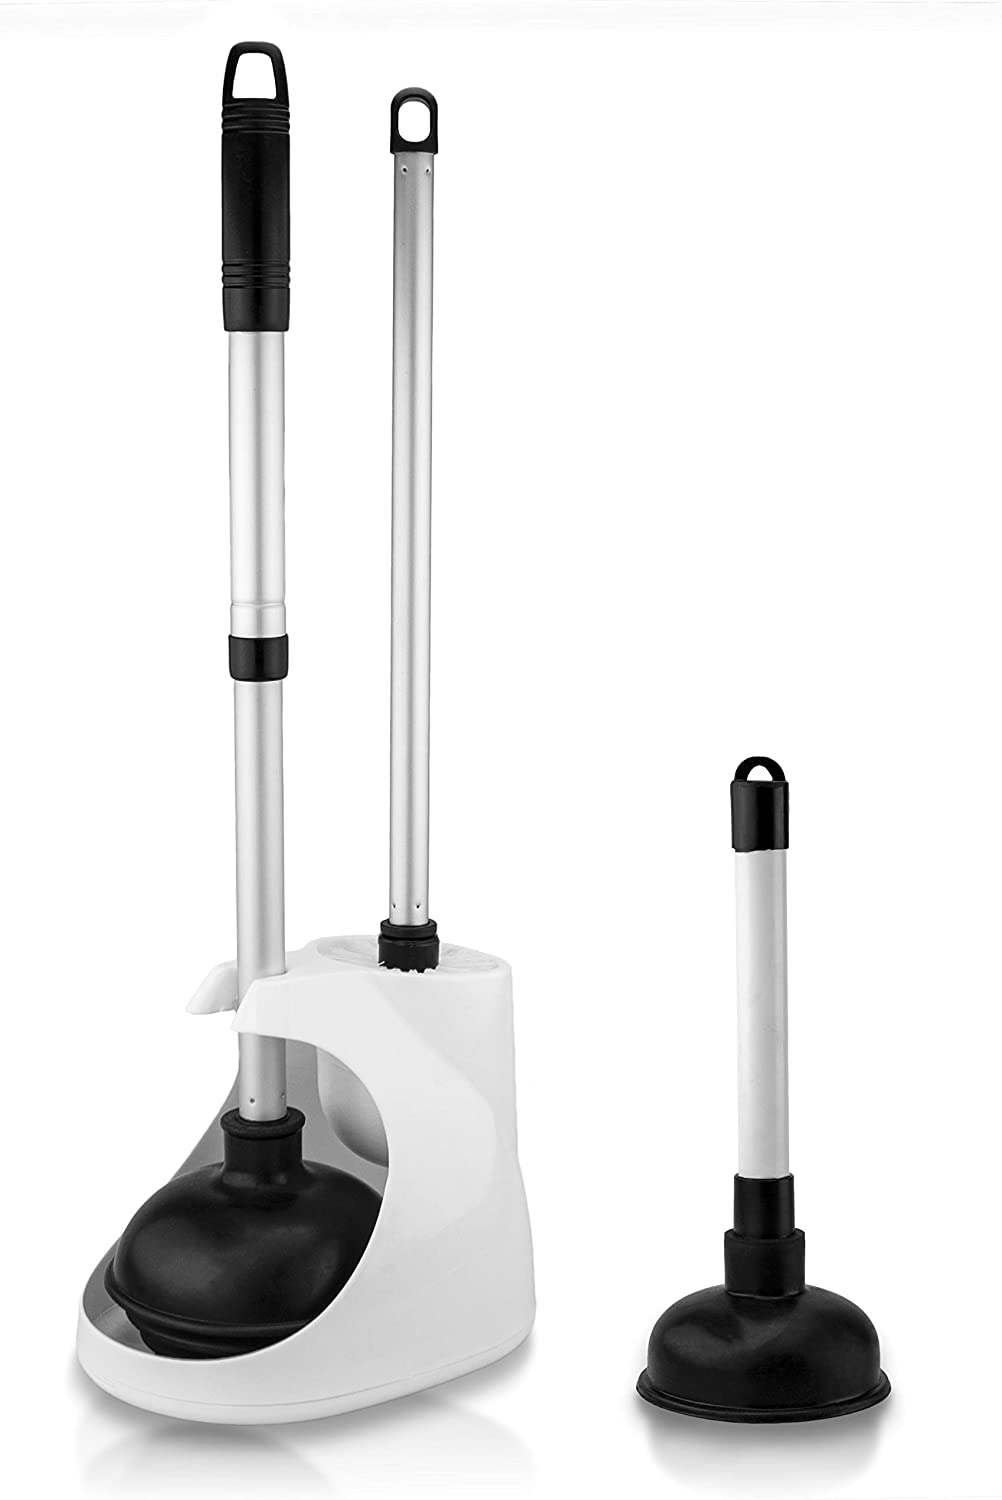 Neiko 60169A Toilet Plunger with Telescopic Aluminum Handle Compact and Discreet Patented All-Angle Design Bonus Mini Sink and Drain Plunger